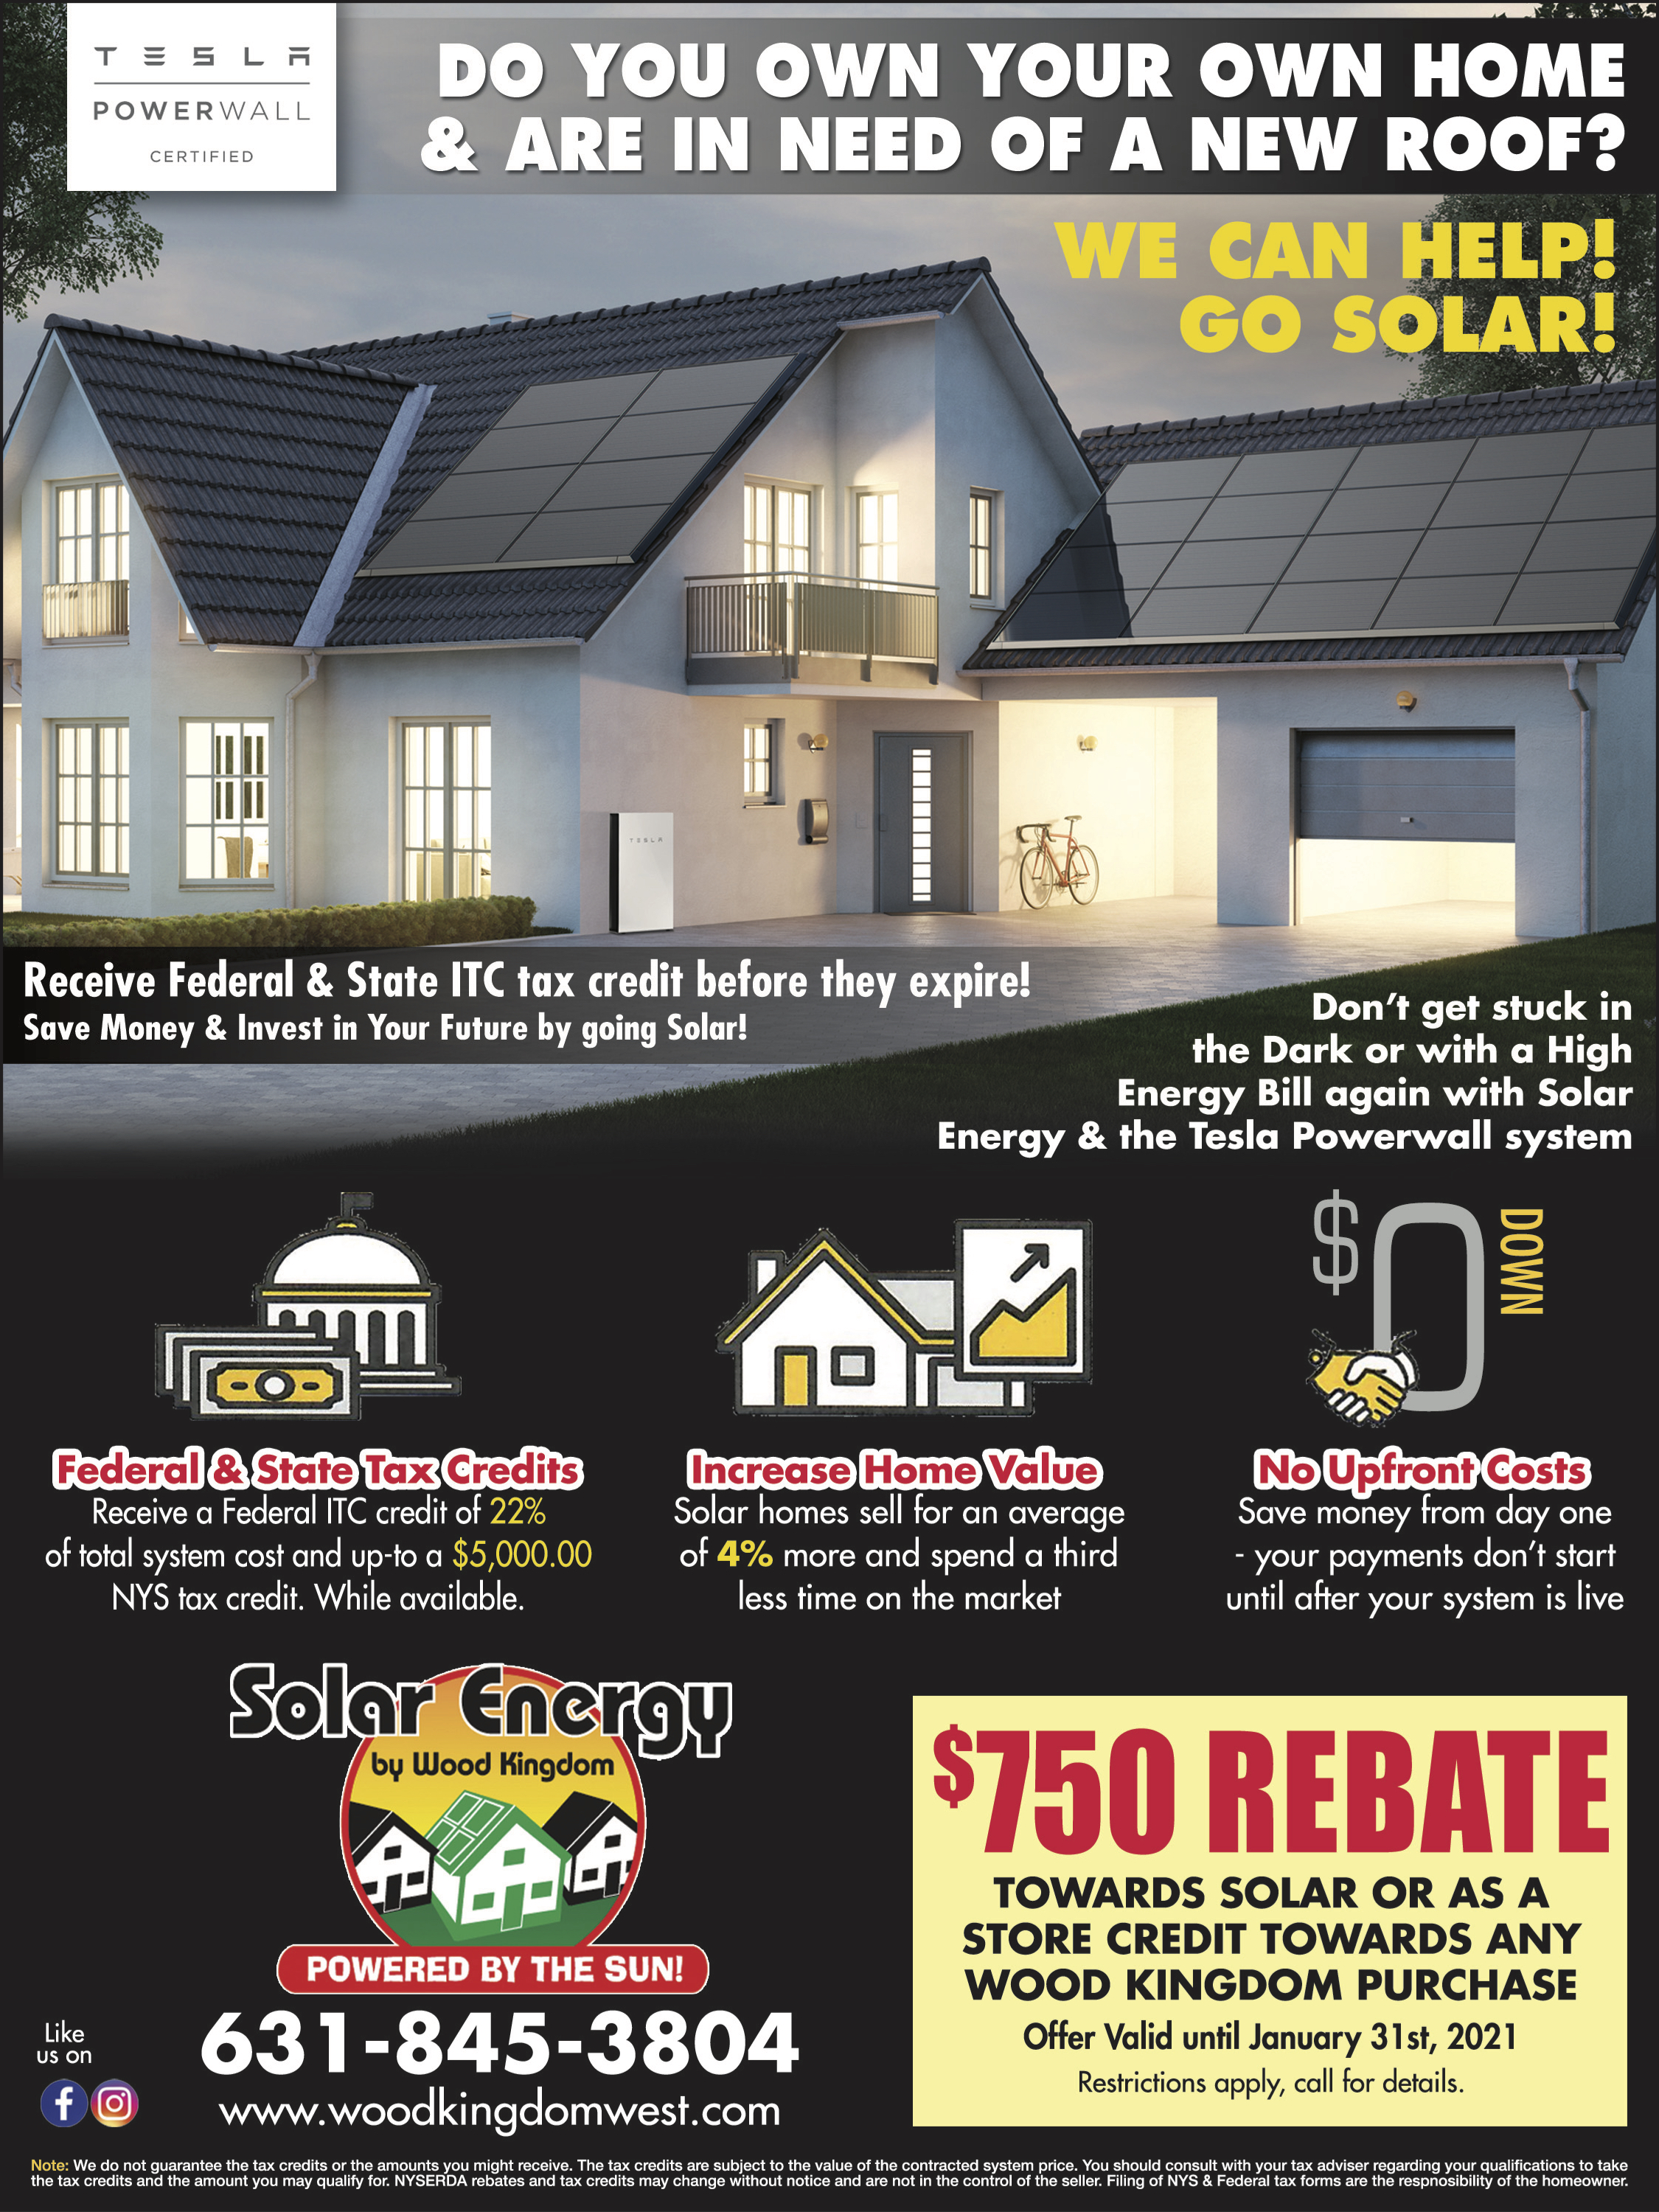 We can help you make your home go solar! Enjoy Federal & State Tax credits and increased home value with no upfront costs from Wood Kingdom West.